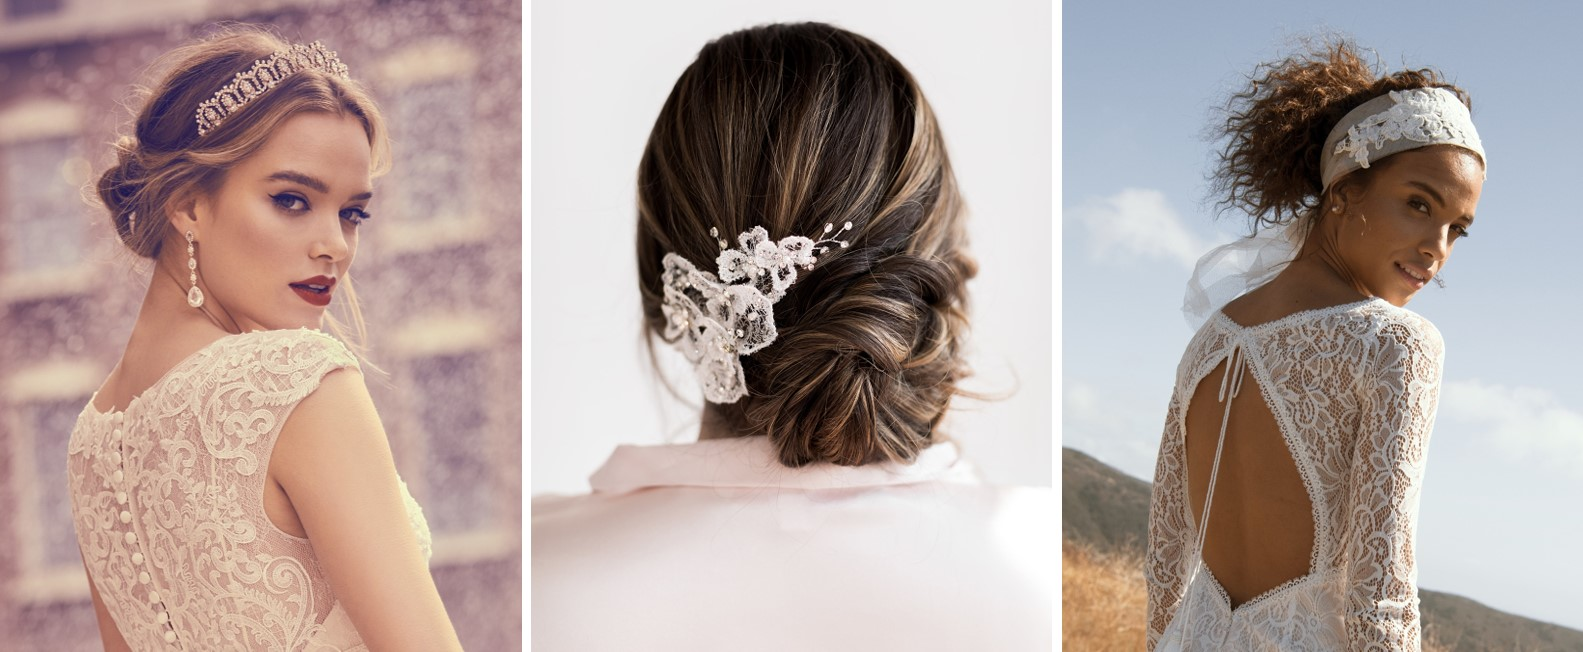 Wedding Hair Ideas | Bridal Up Do's